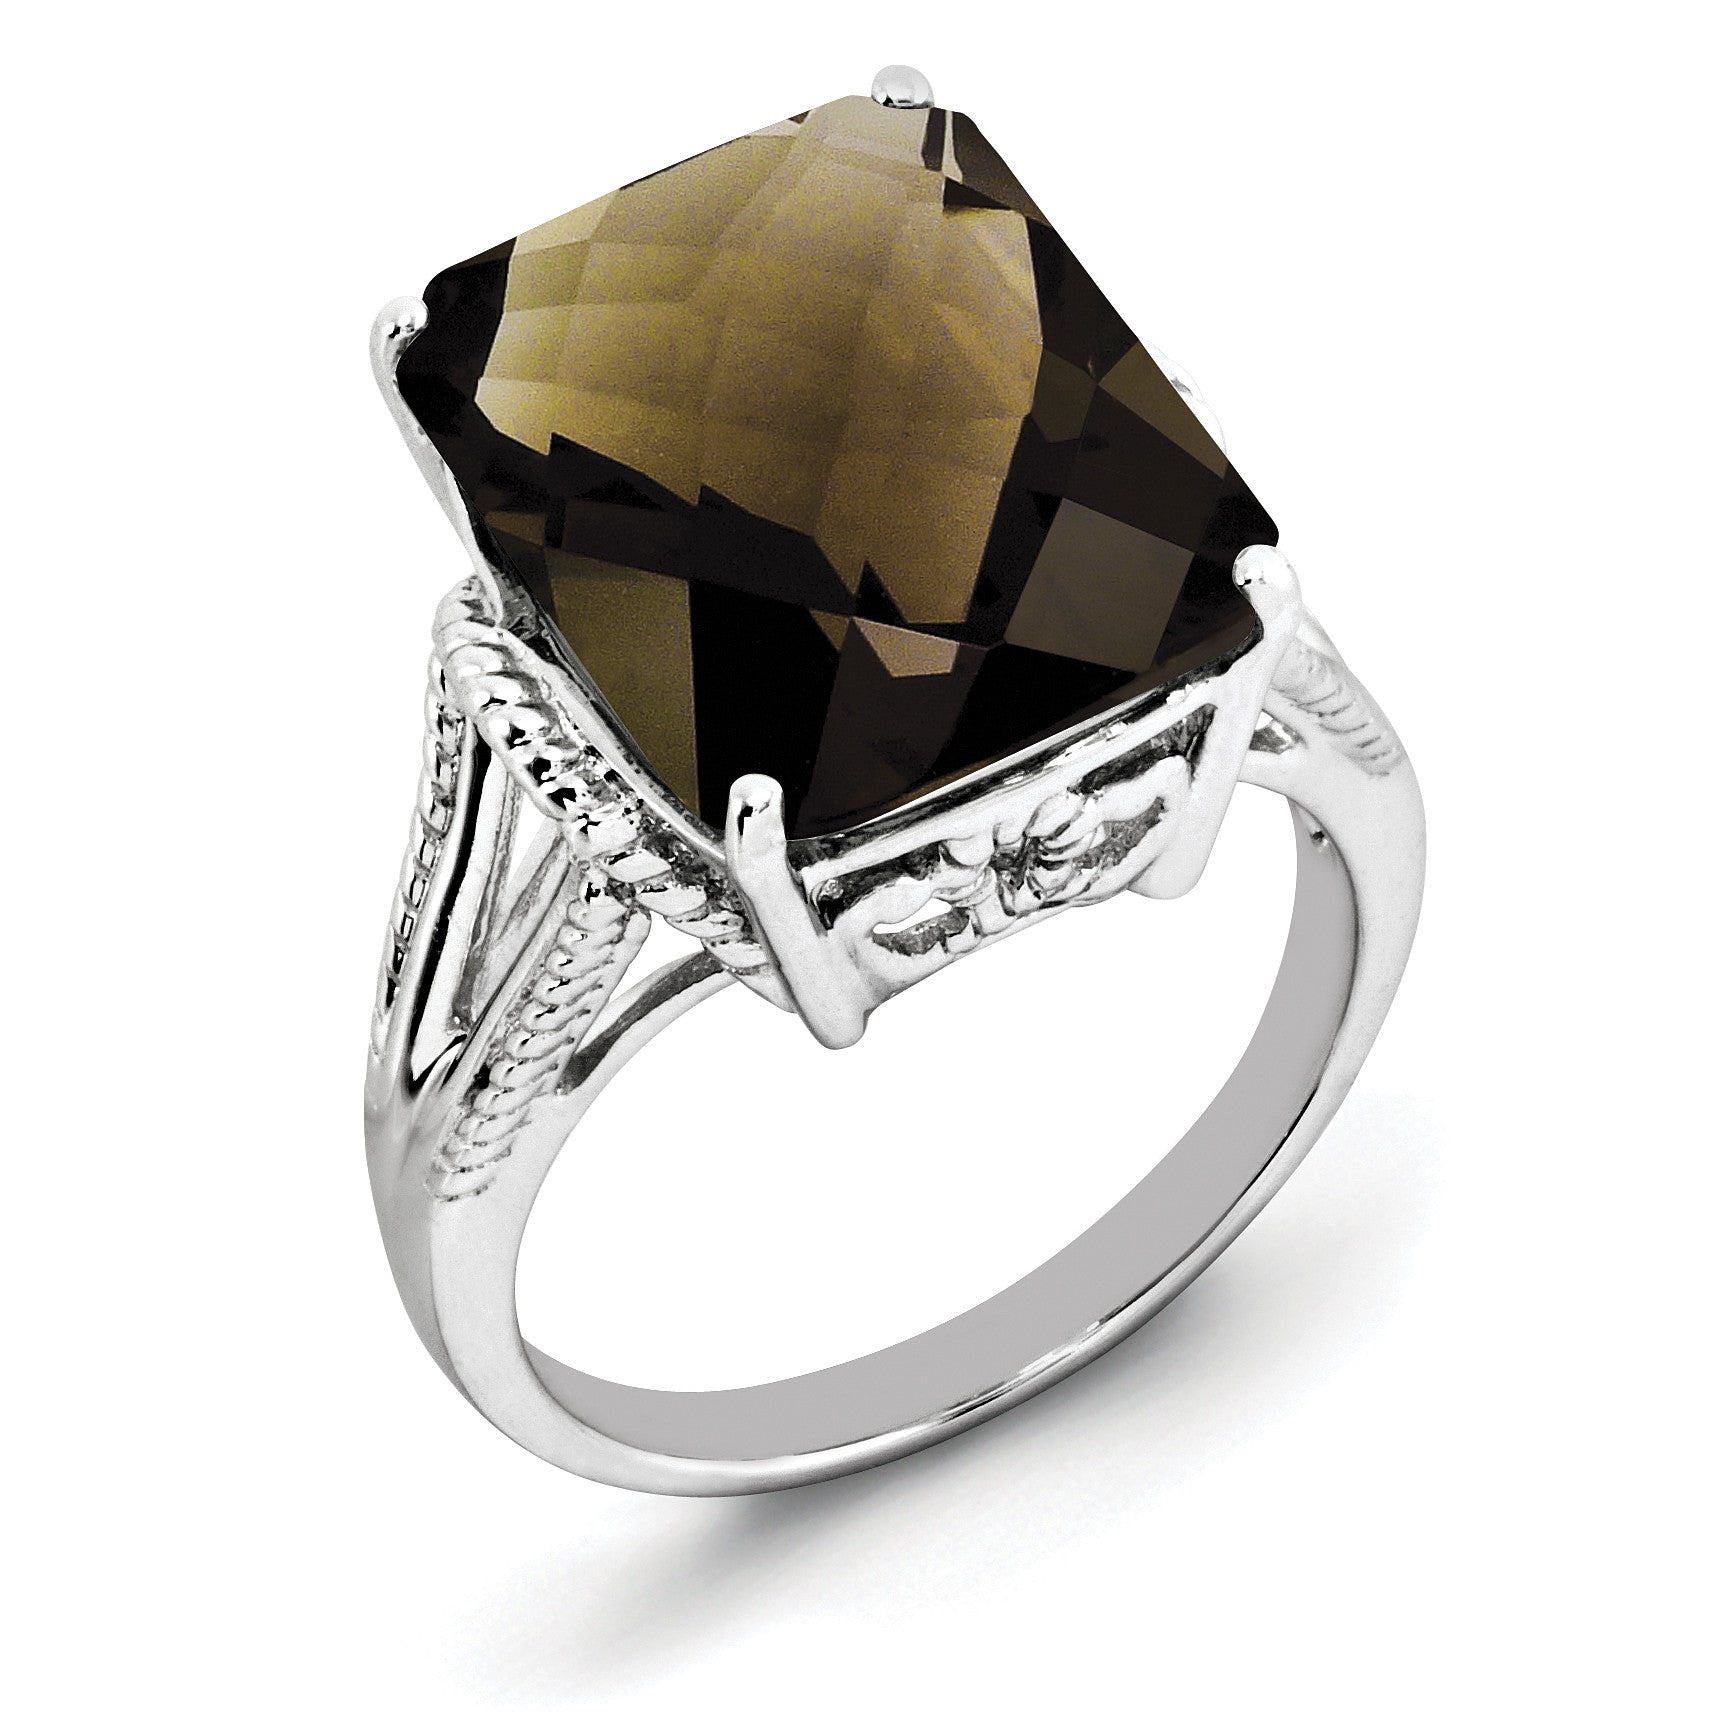 Sterling Silver Rhodium Checker-Cut Smoky Quartz Ring QR2953SQ - shirin-diamonds